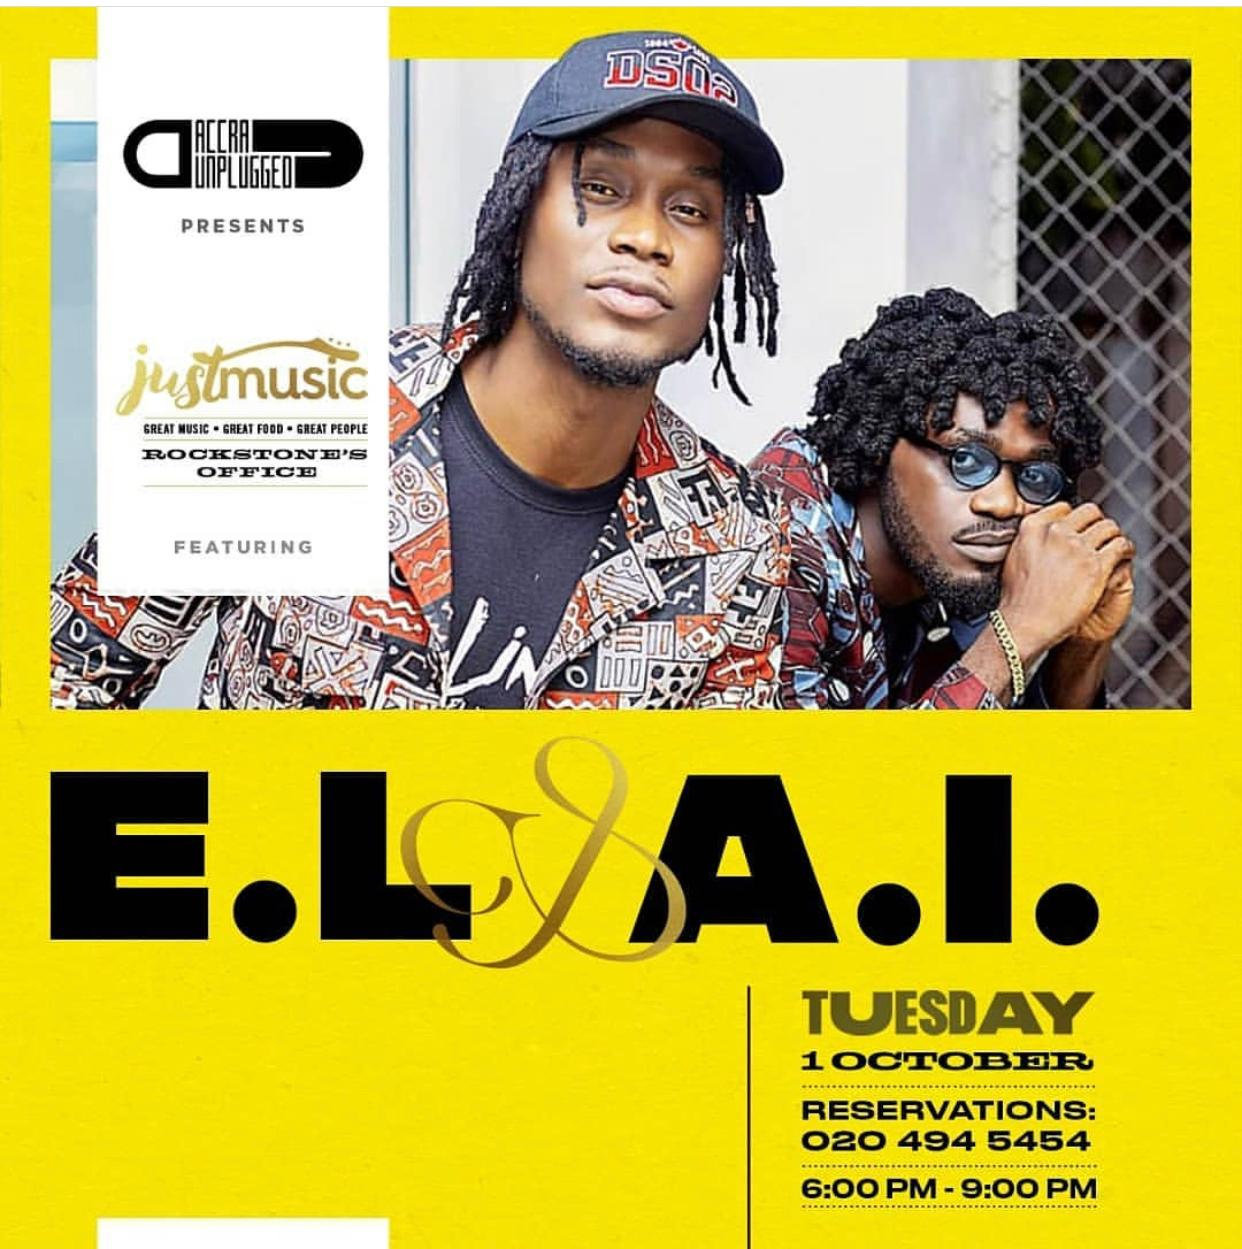 EL AND A.I HOSTS JUST MUSIC AT ROCKSTONE'S OFFICE